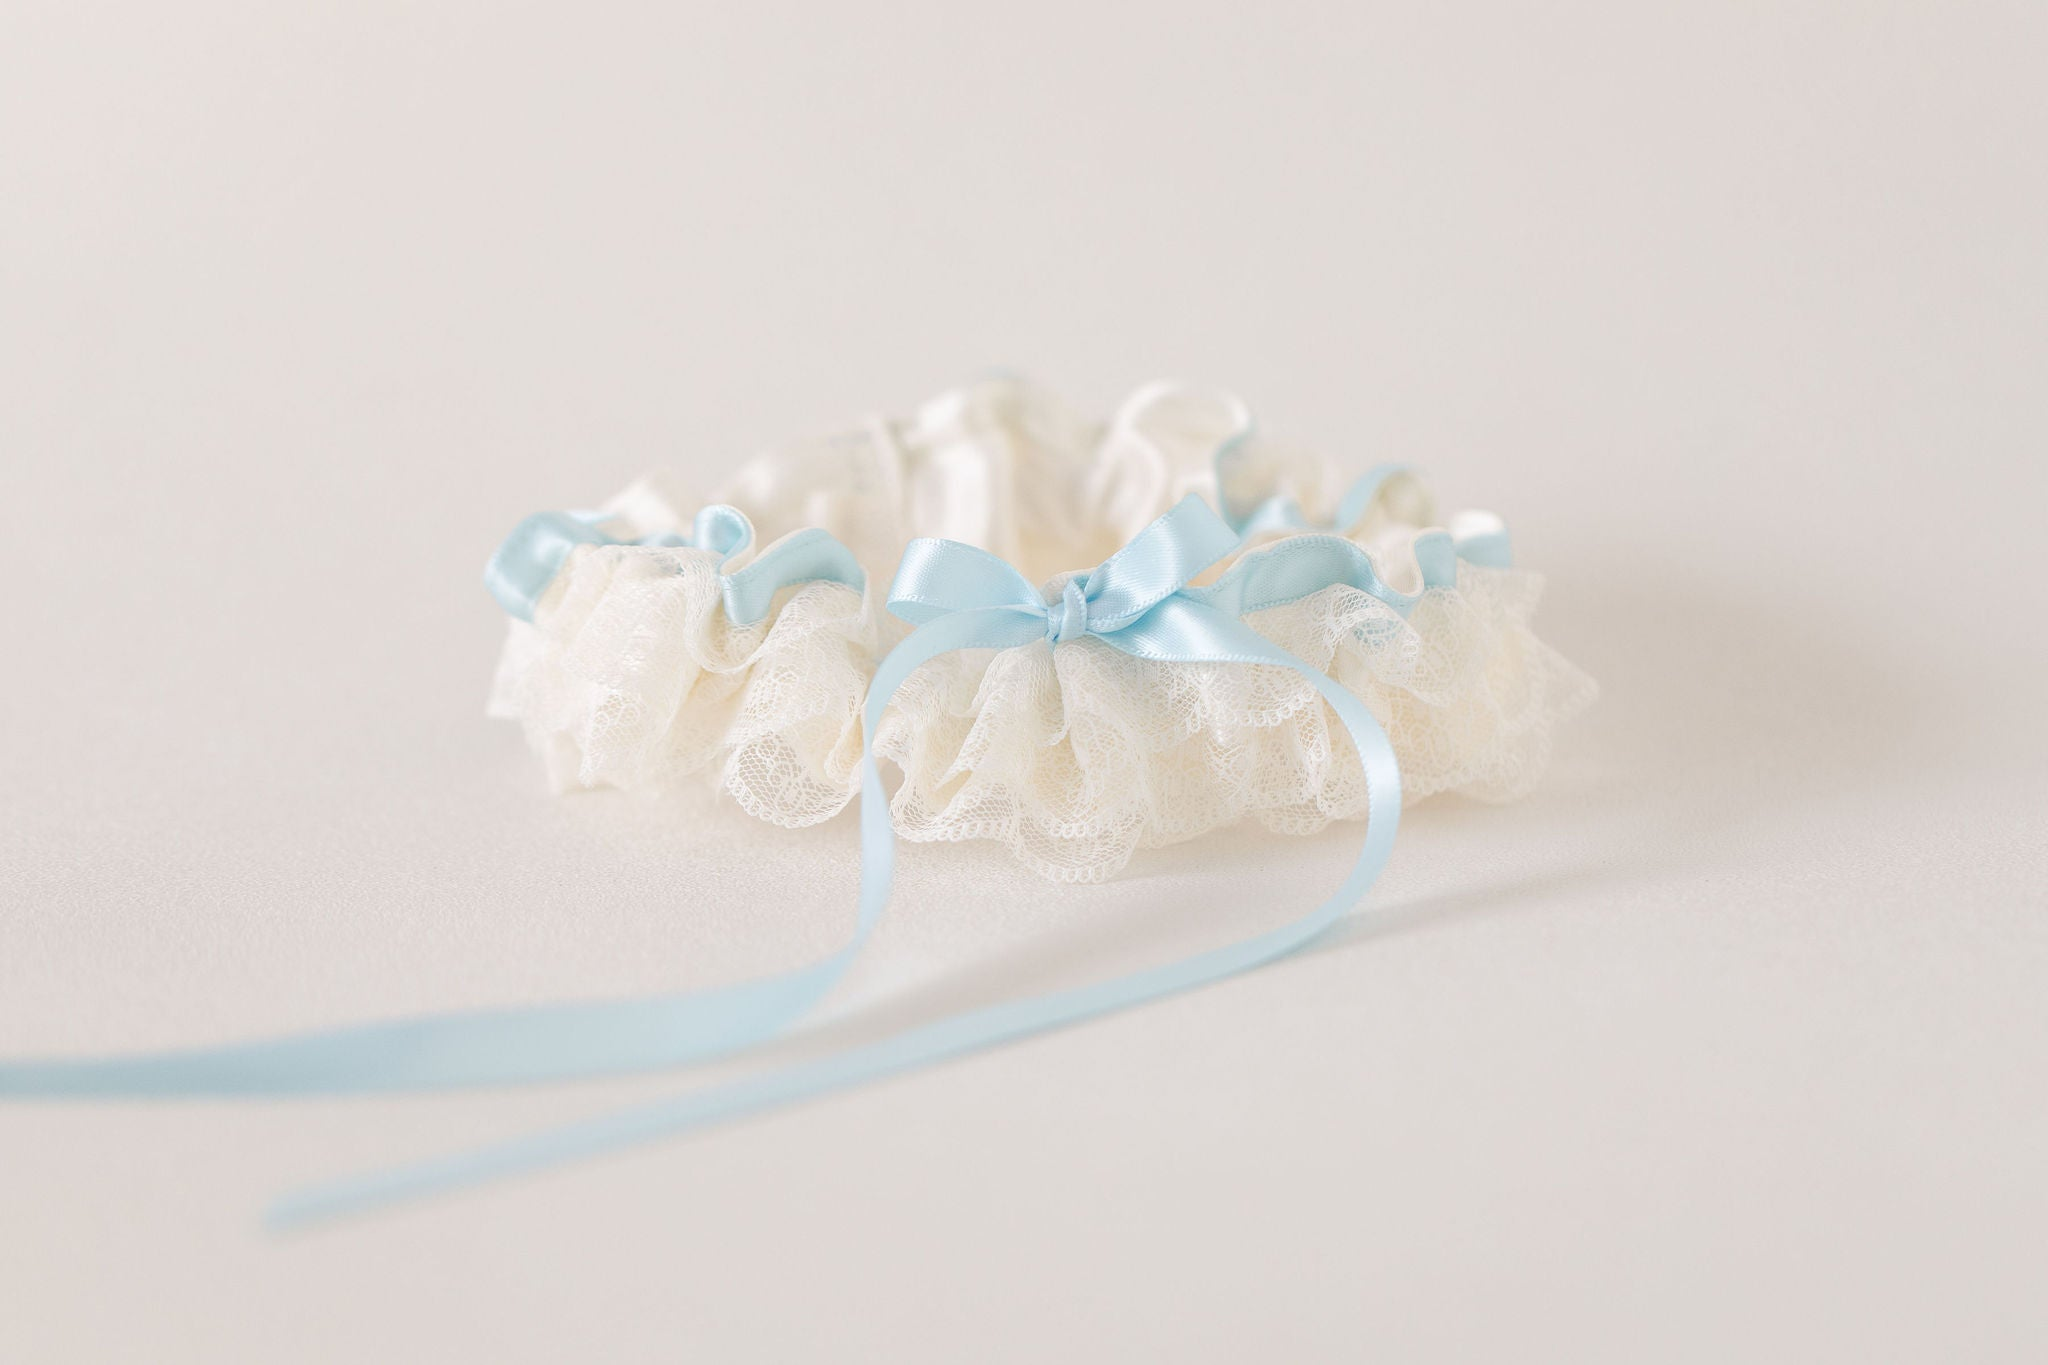 custom wedding garter with personalized embroidery by The Garter Girl